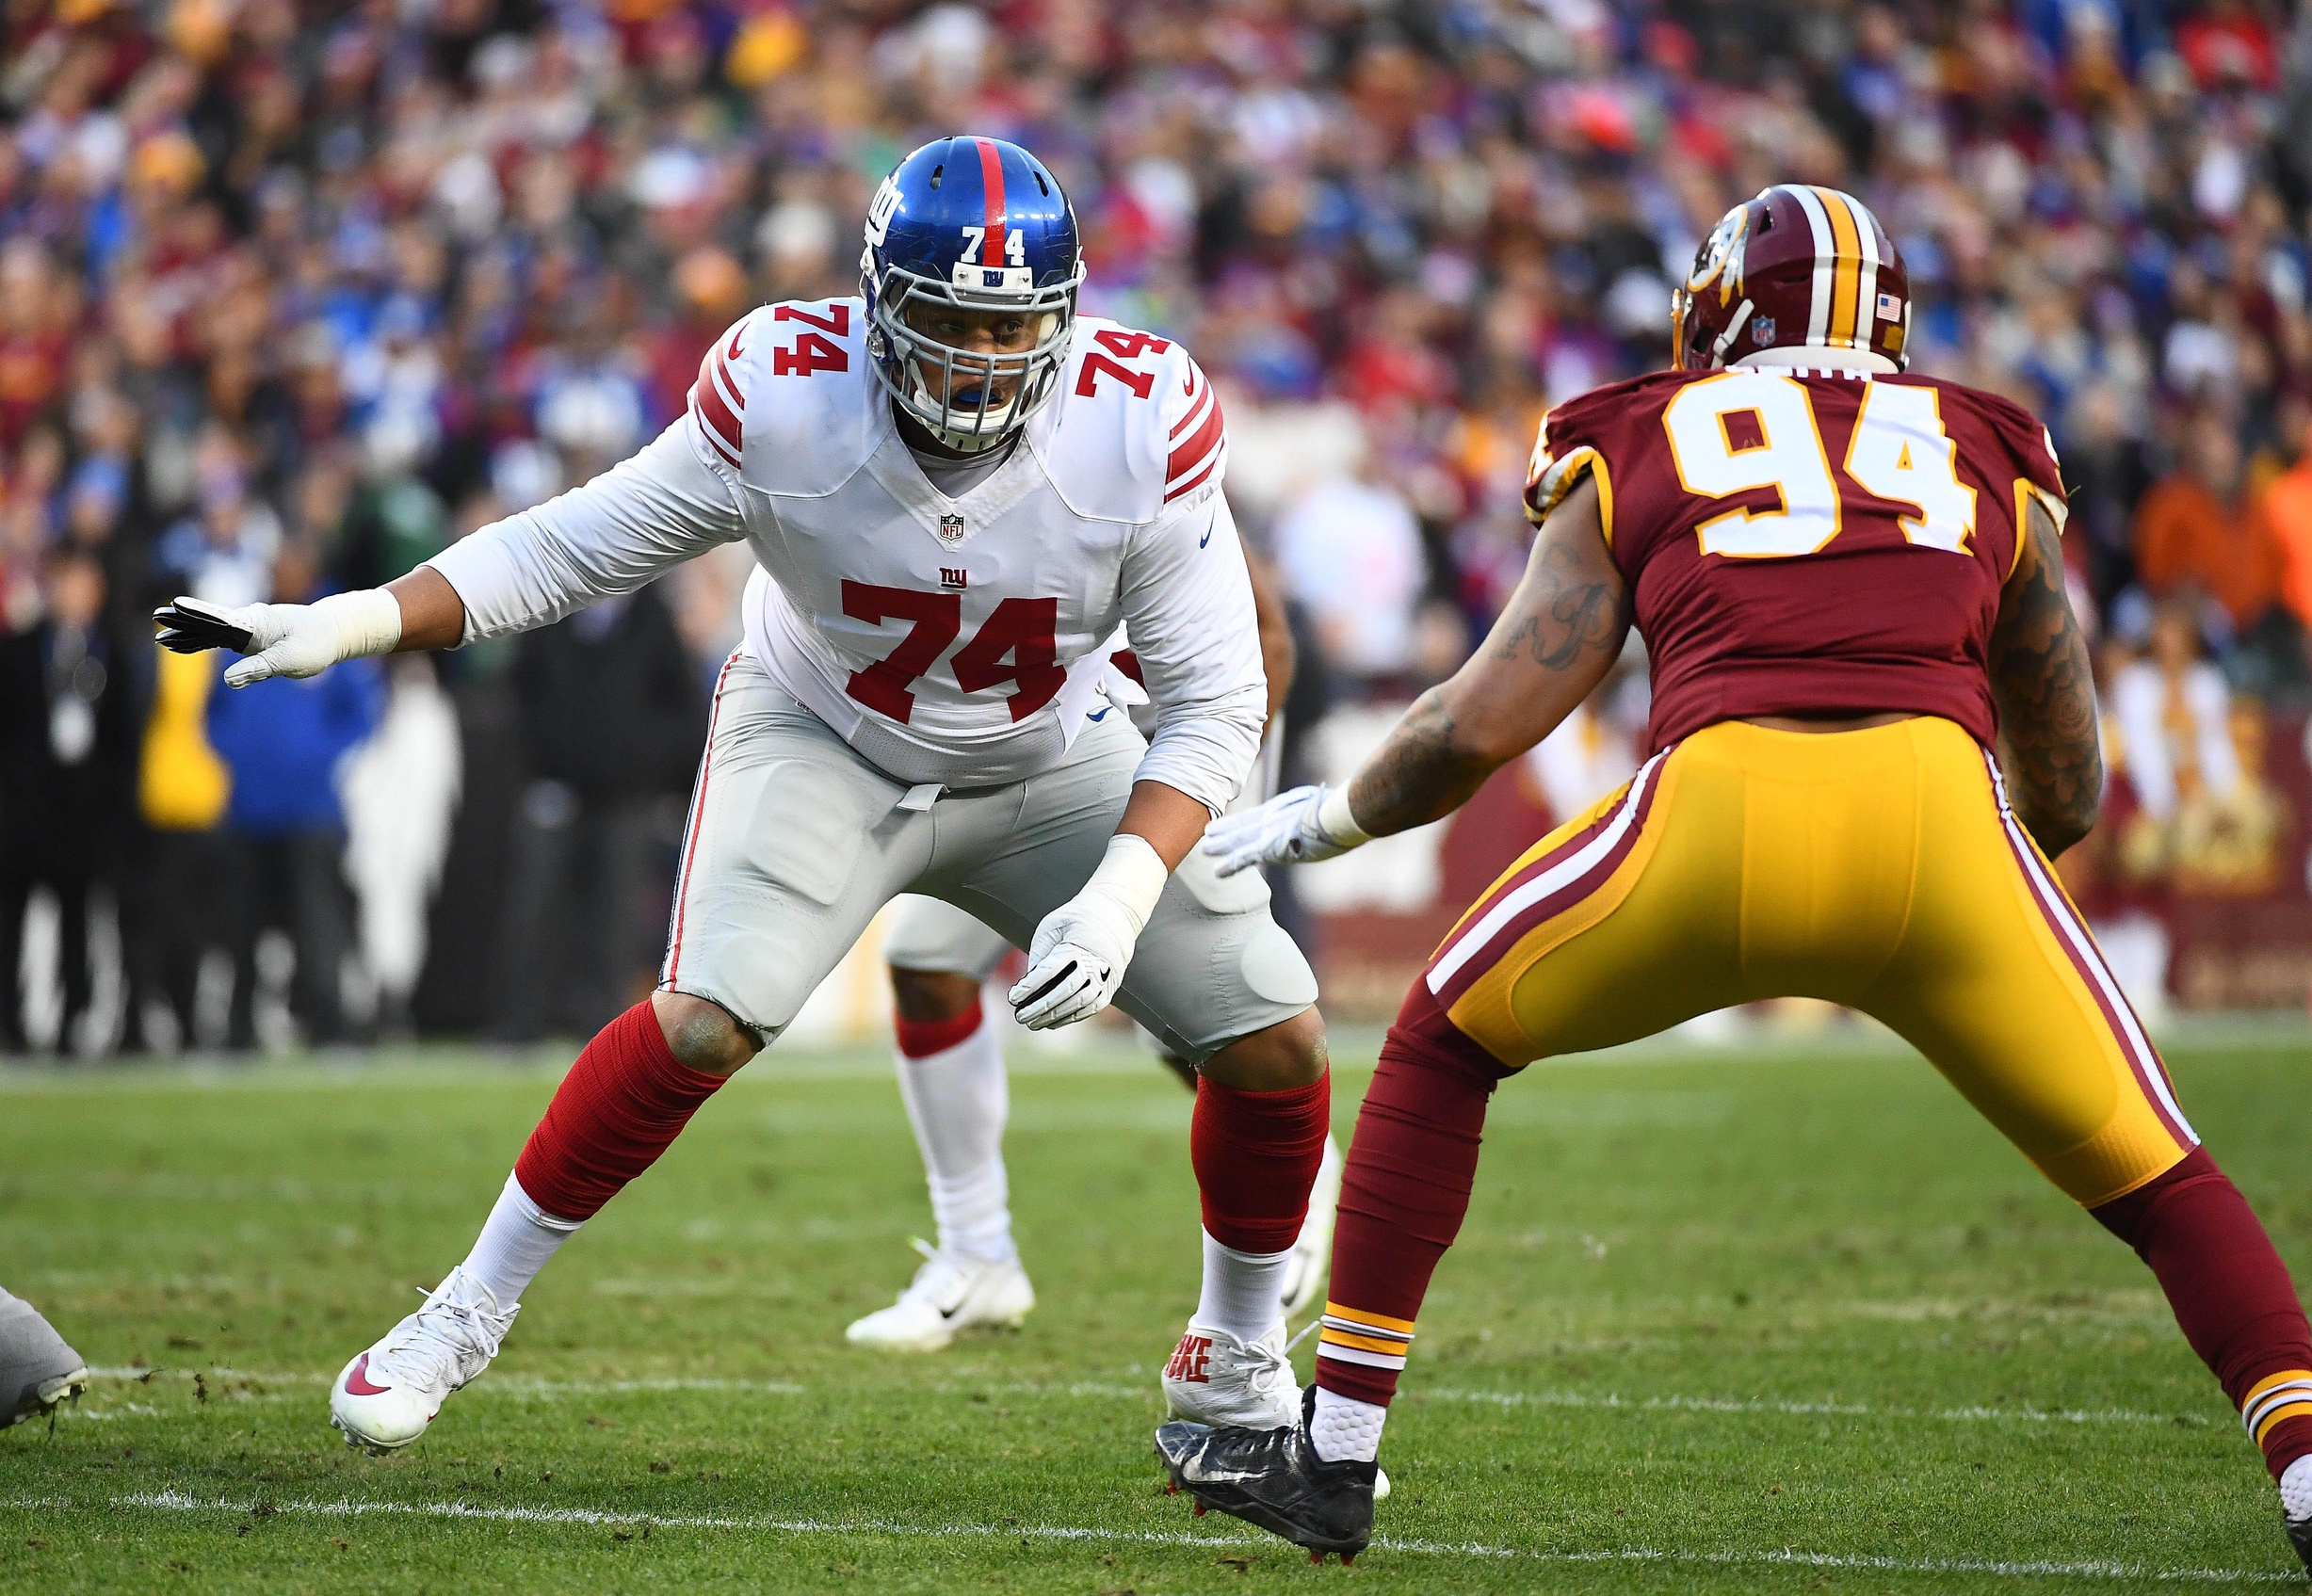 Ereck Flowers release generates strong reactions from Giants fans